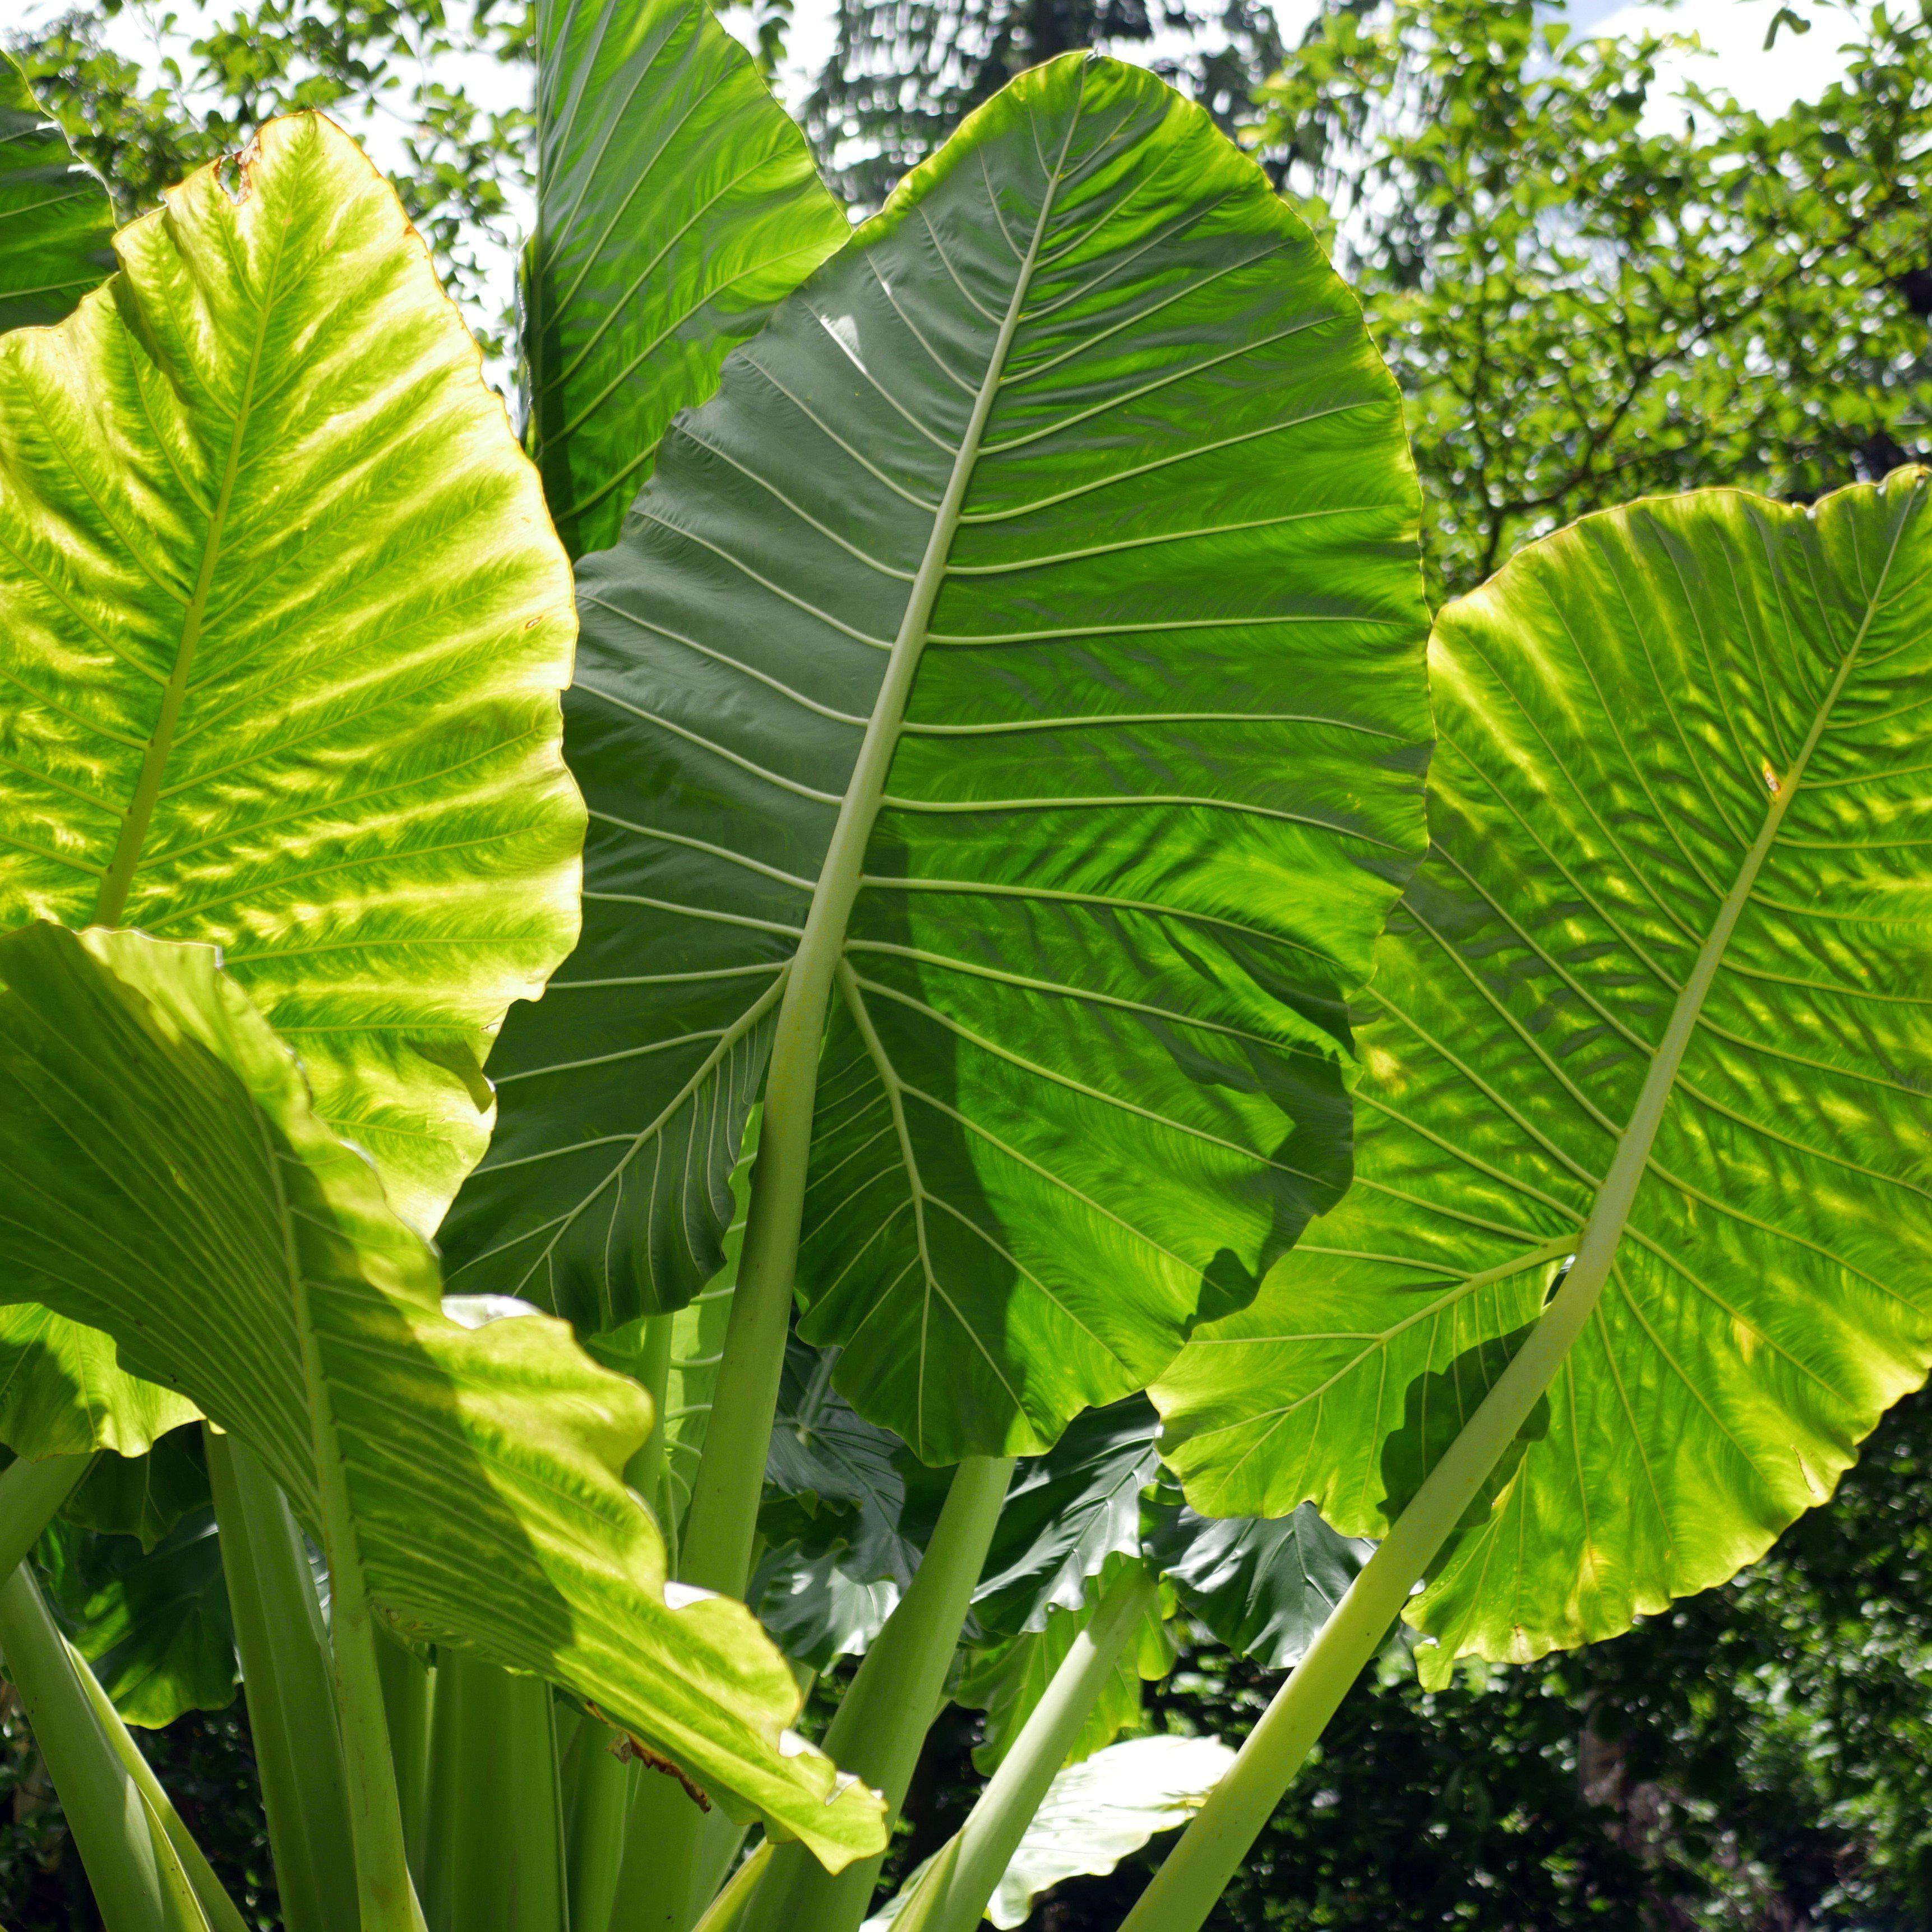 Alocasia Macrorrhiza Alocasia Upright Elephant Ear Bulbs Buy